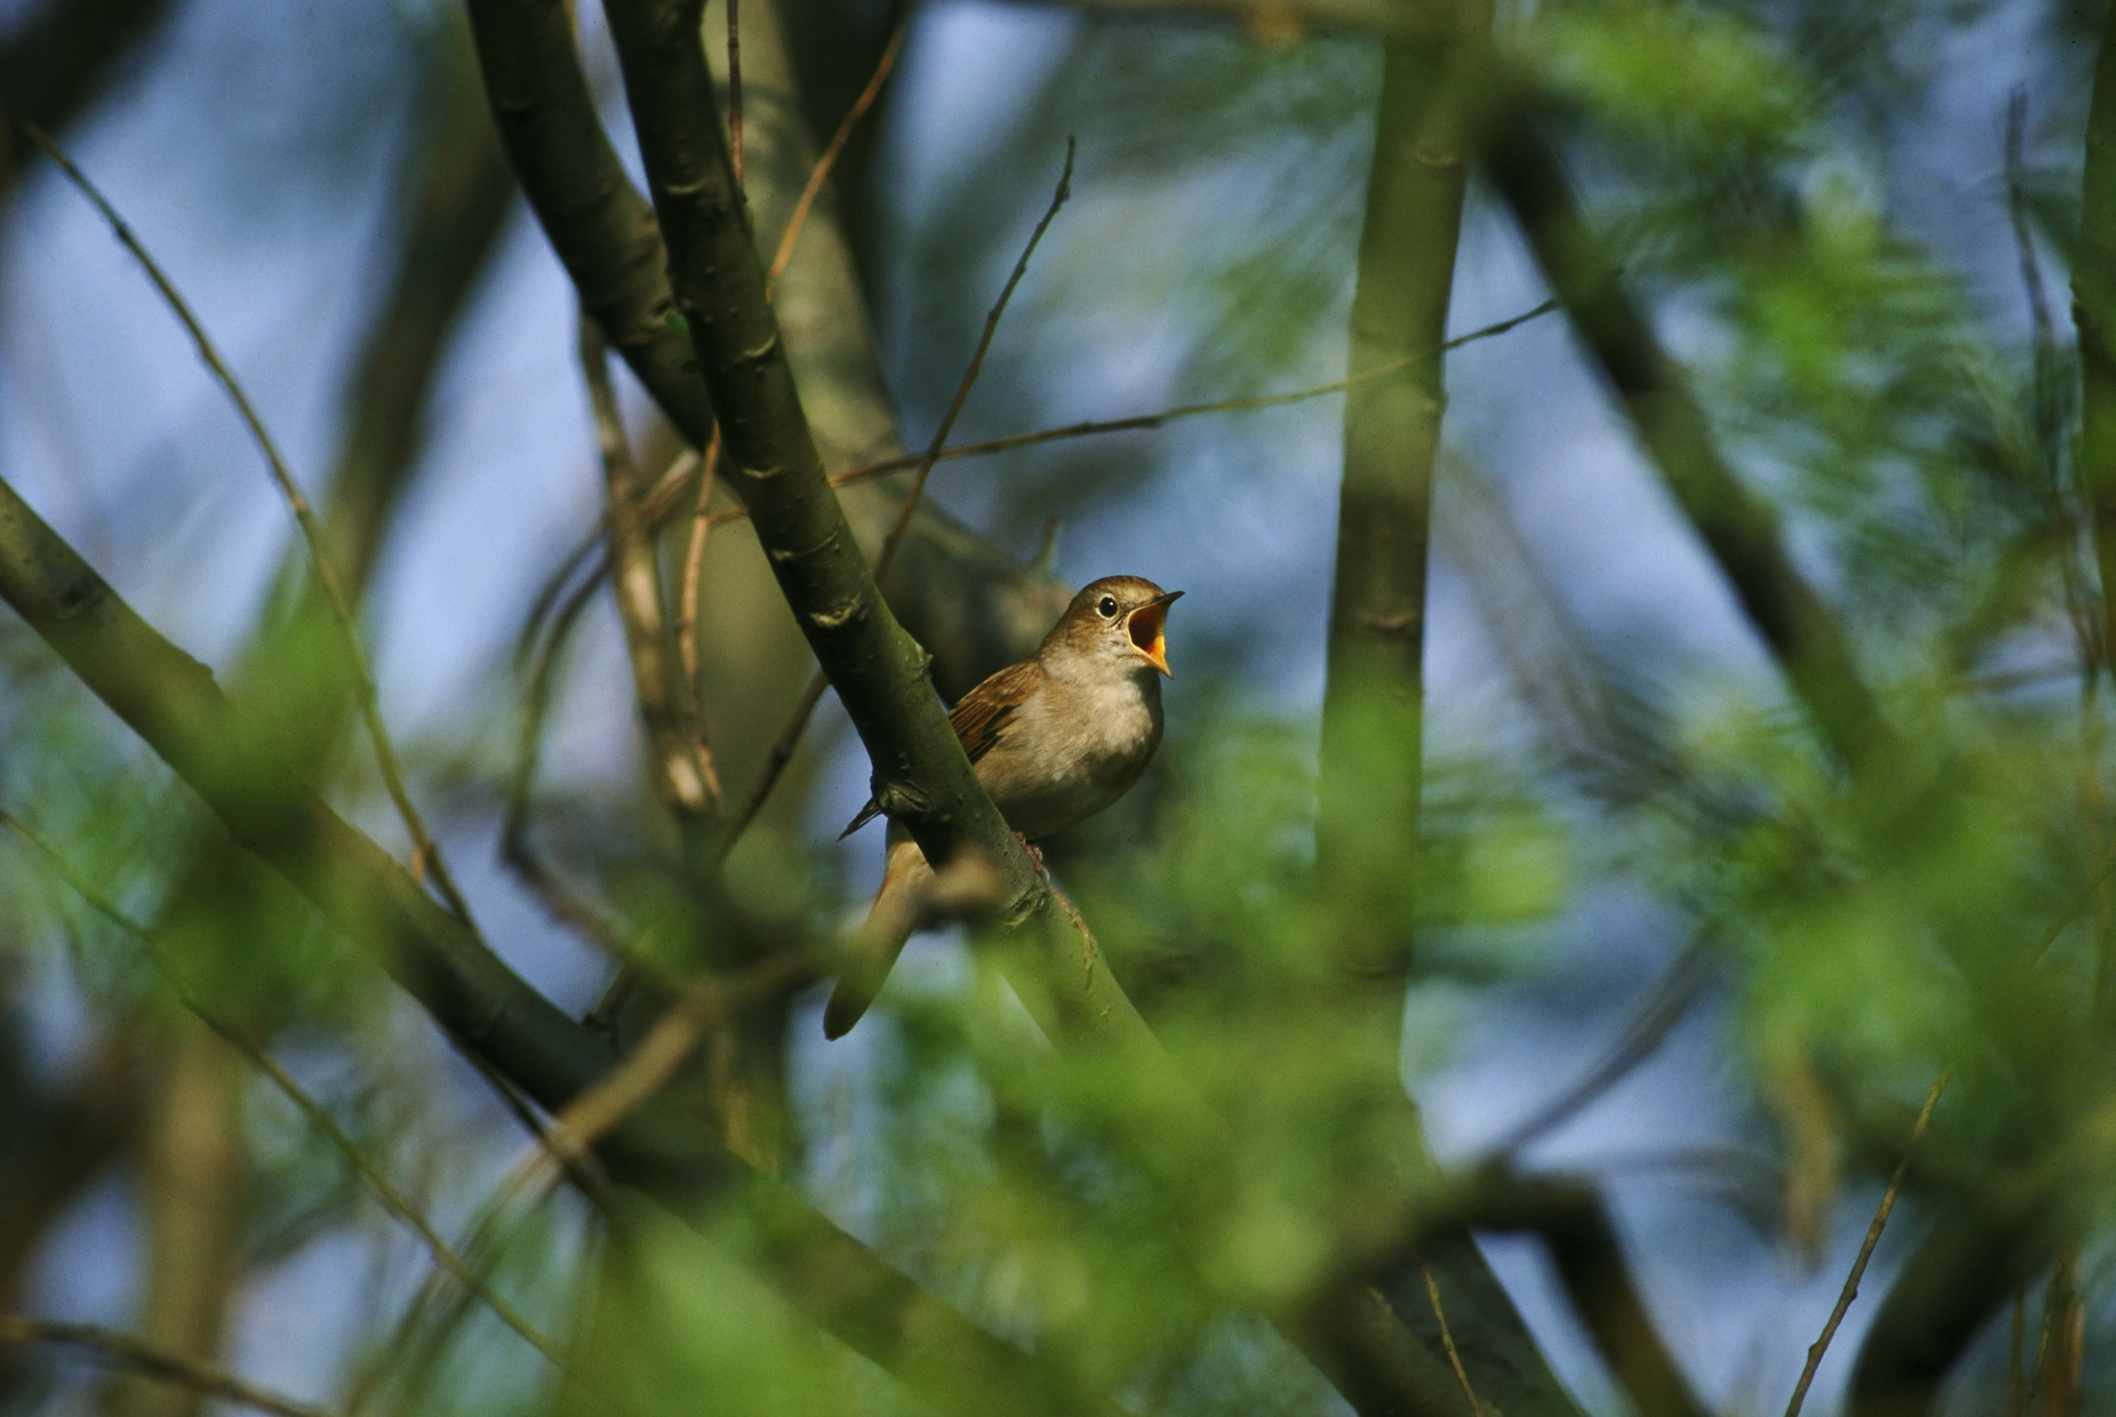 Nightingale singing. © David Tipling/Getty